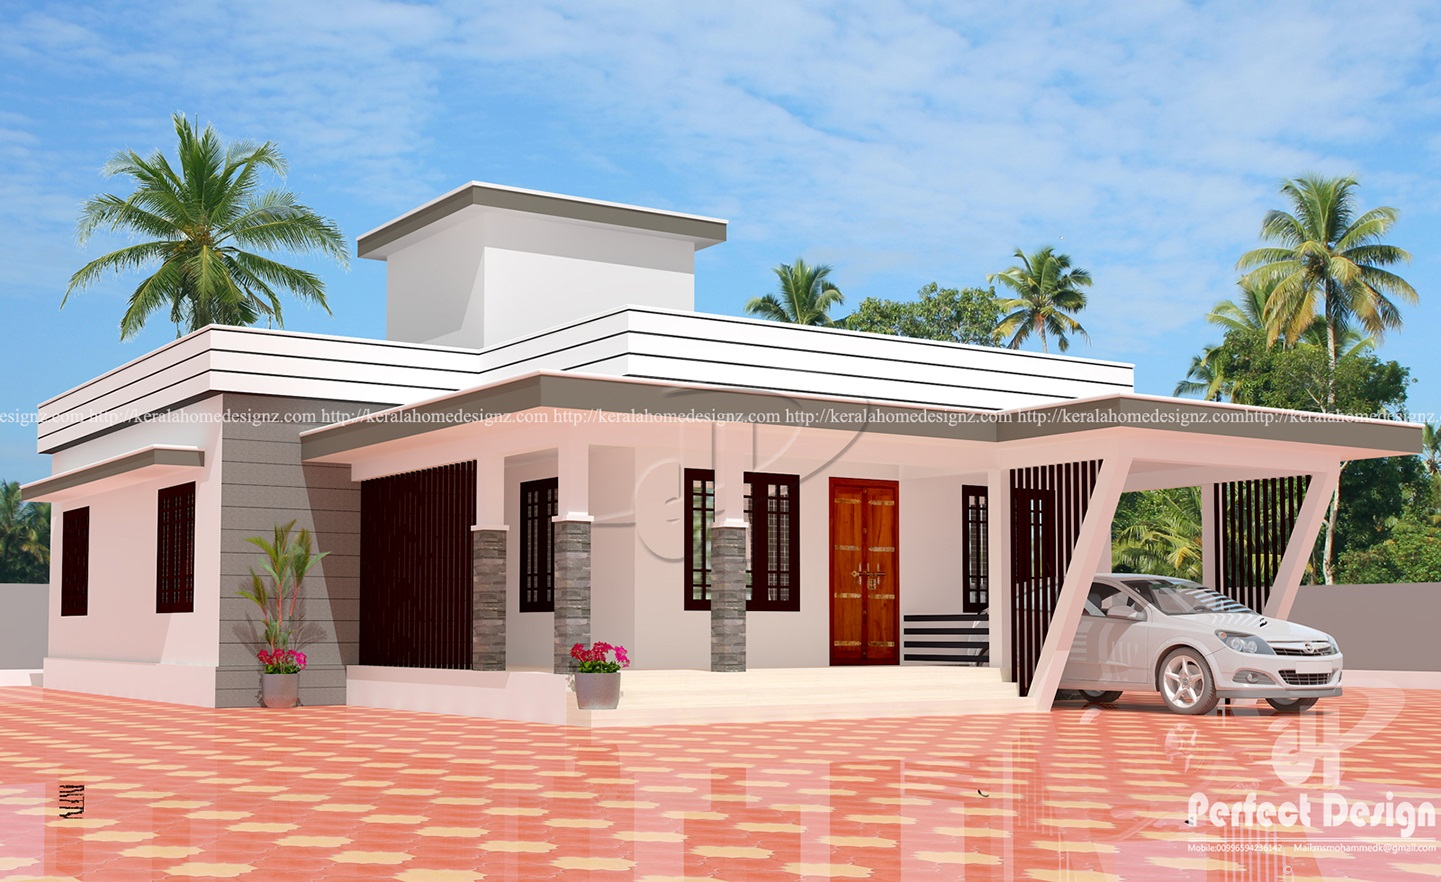 3 bedroom modern flat roof house layout kerala home design for Modern 3 bedroom house design